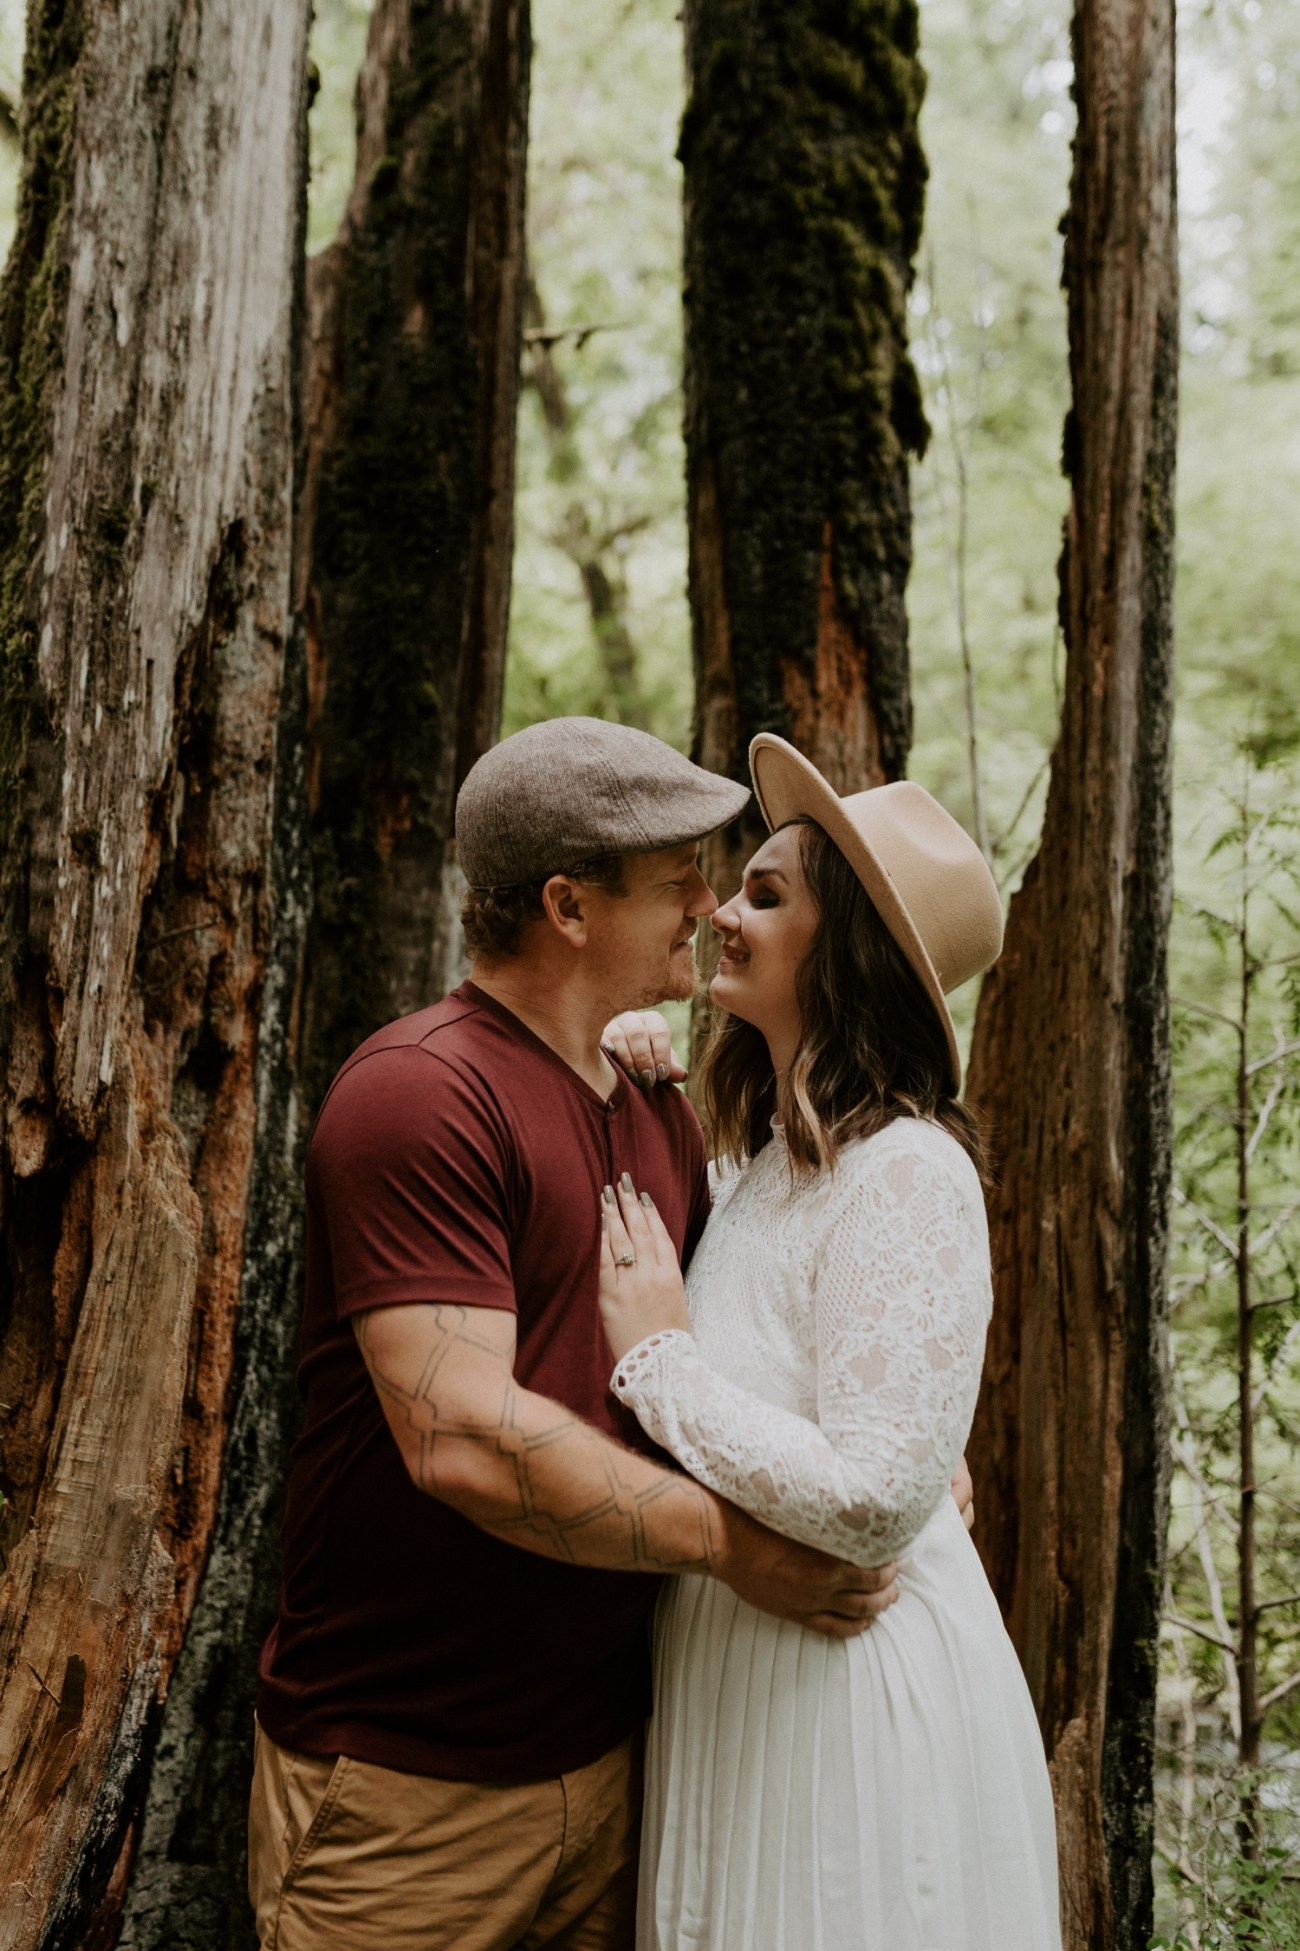 Silver Falls State Park Engagement Session North Falls Engagement Photos Portland Wedding Photographer Oregon Elopement Photographer Anais Possamai Photography 008